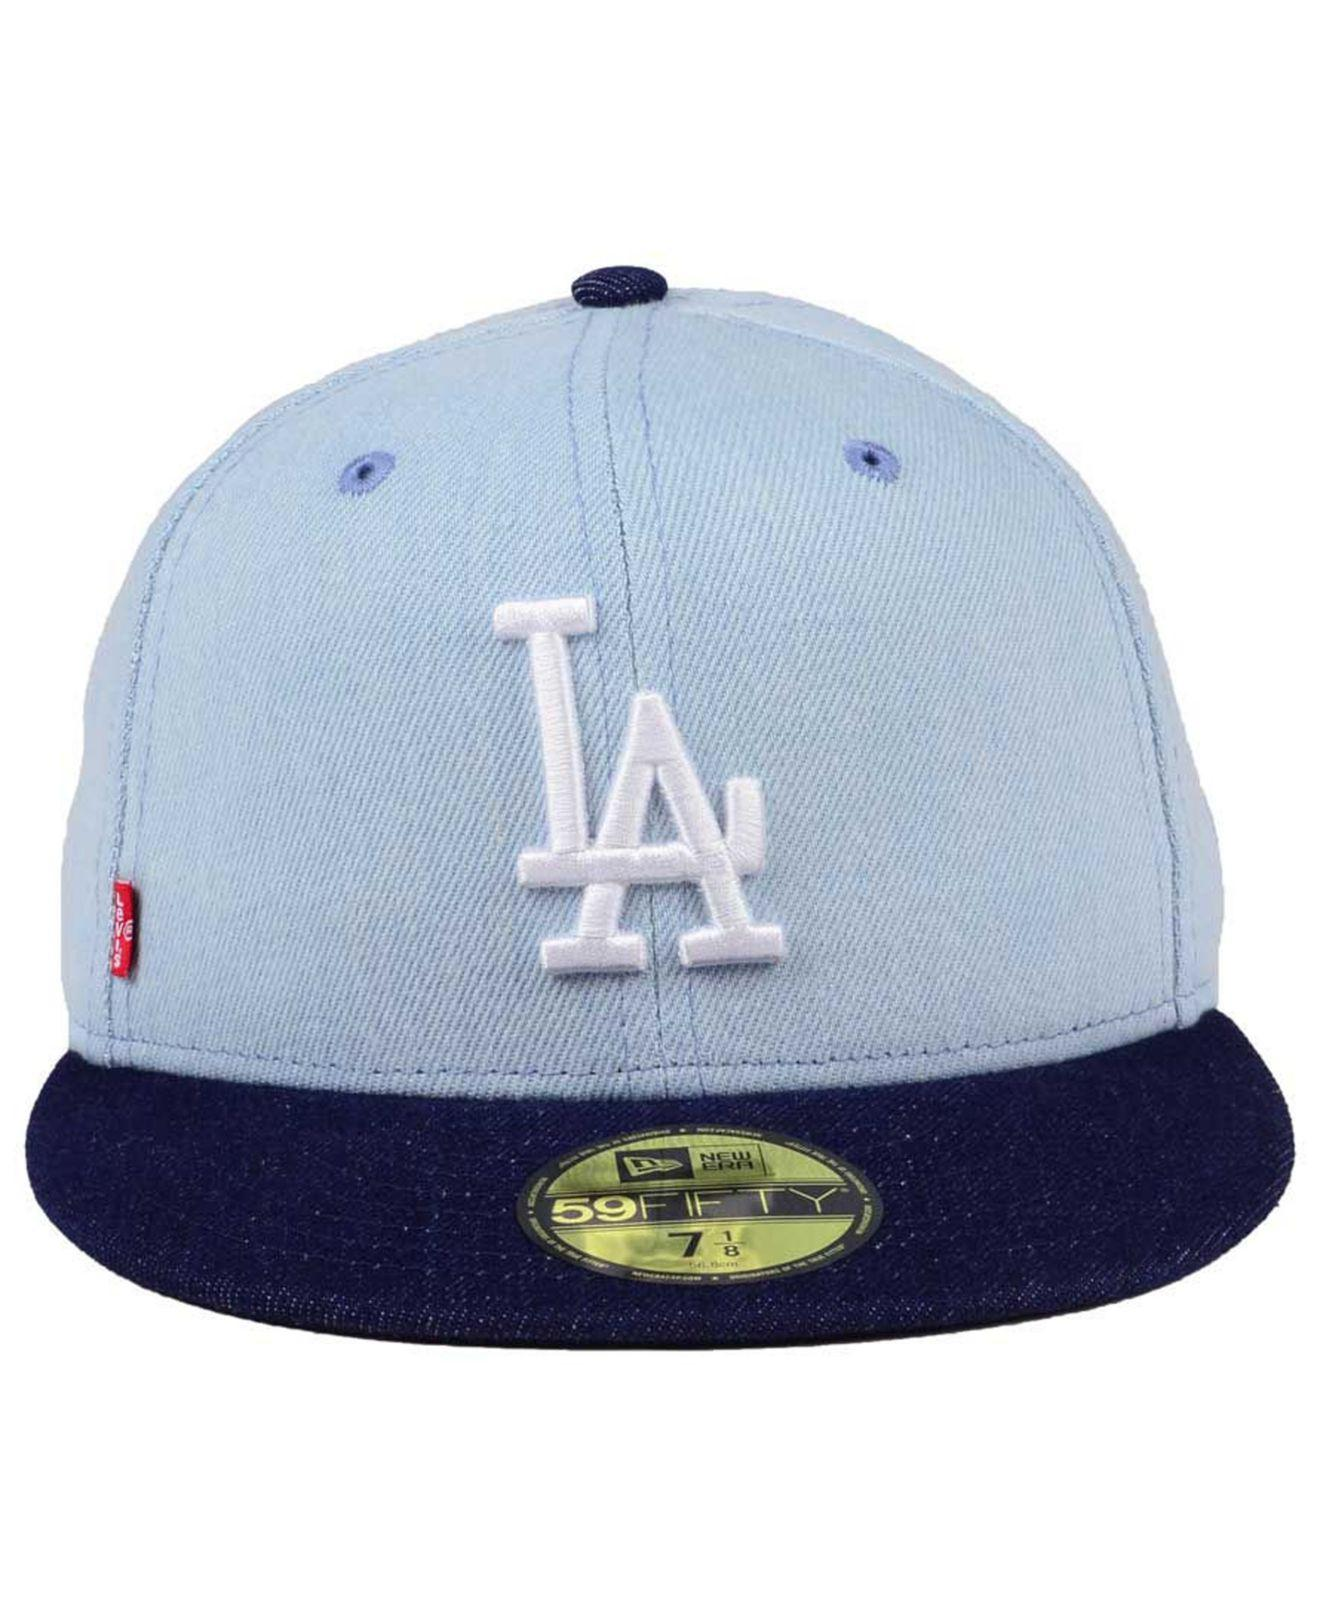 0fe540bc8e6 Lyst - Ktz Los Angeles Dodgers X Levi 59fifty Fitted Cap in Blue for Men